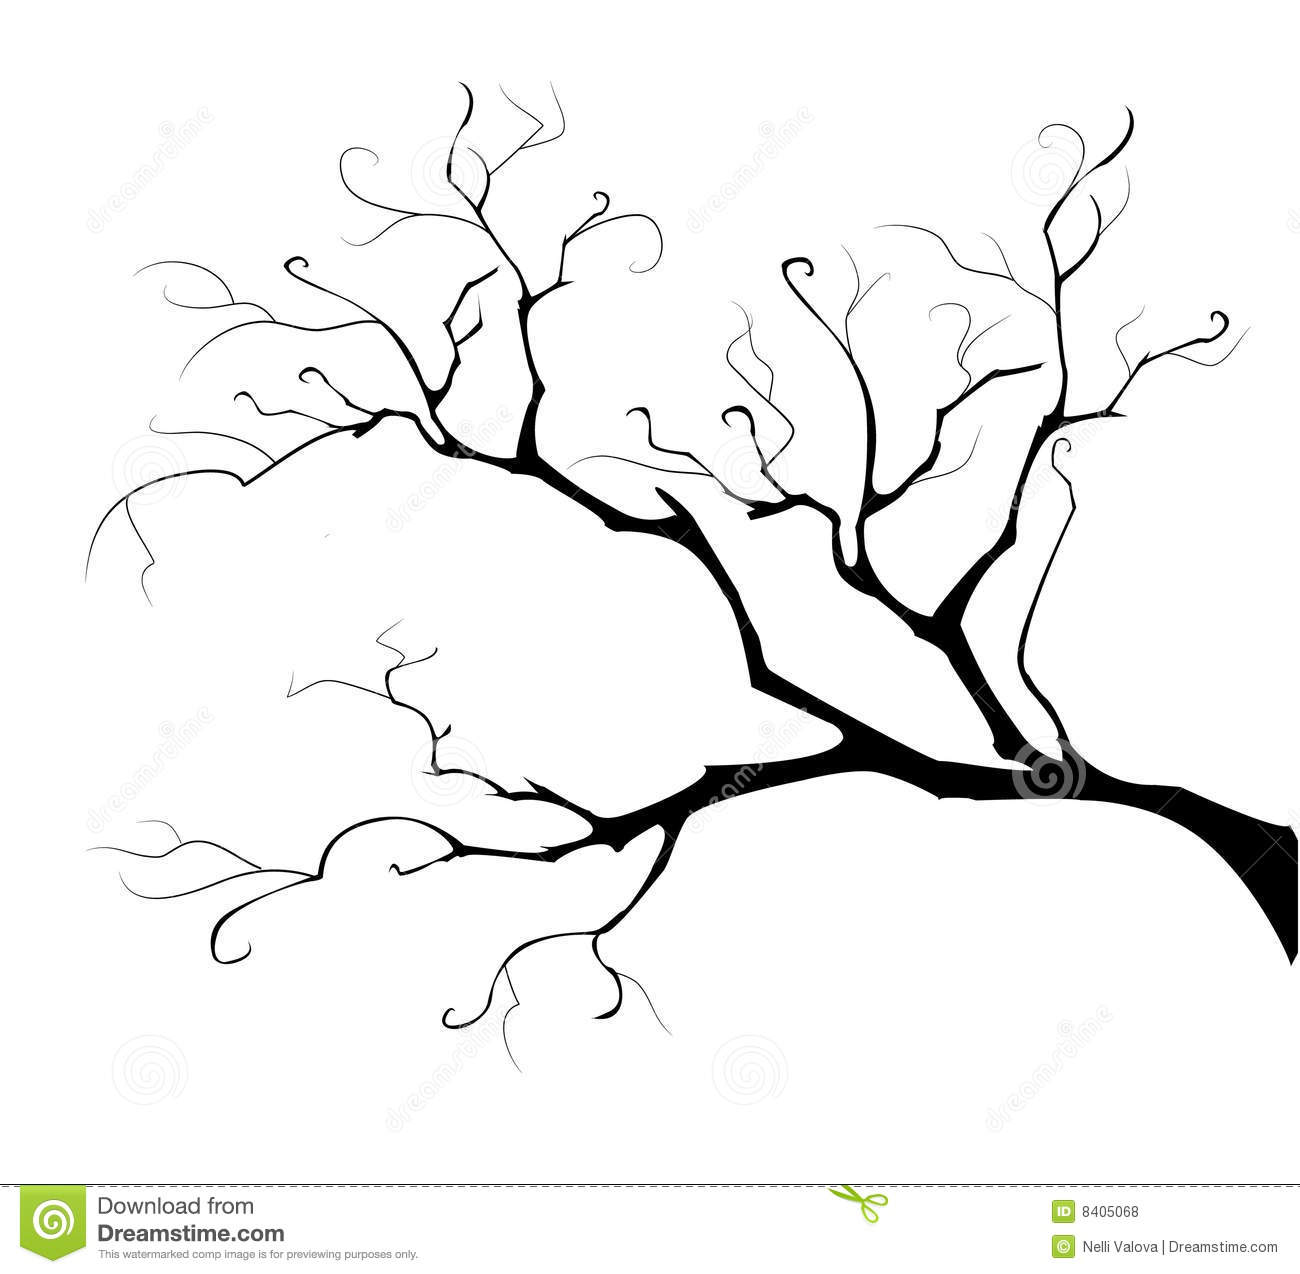 Tree with tree branches clipart graphic black and white stock Black tree branches clipart - ClipartFox graphic black and white stock